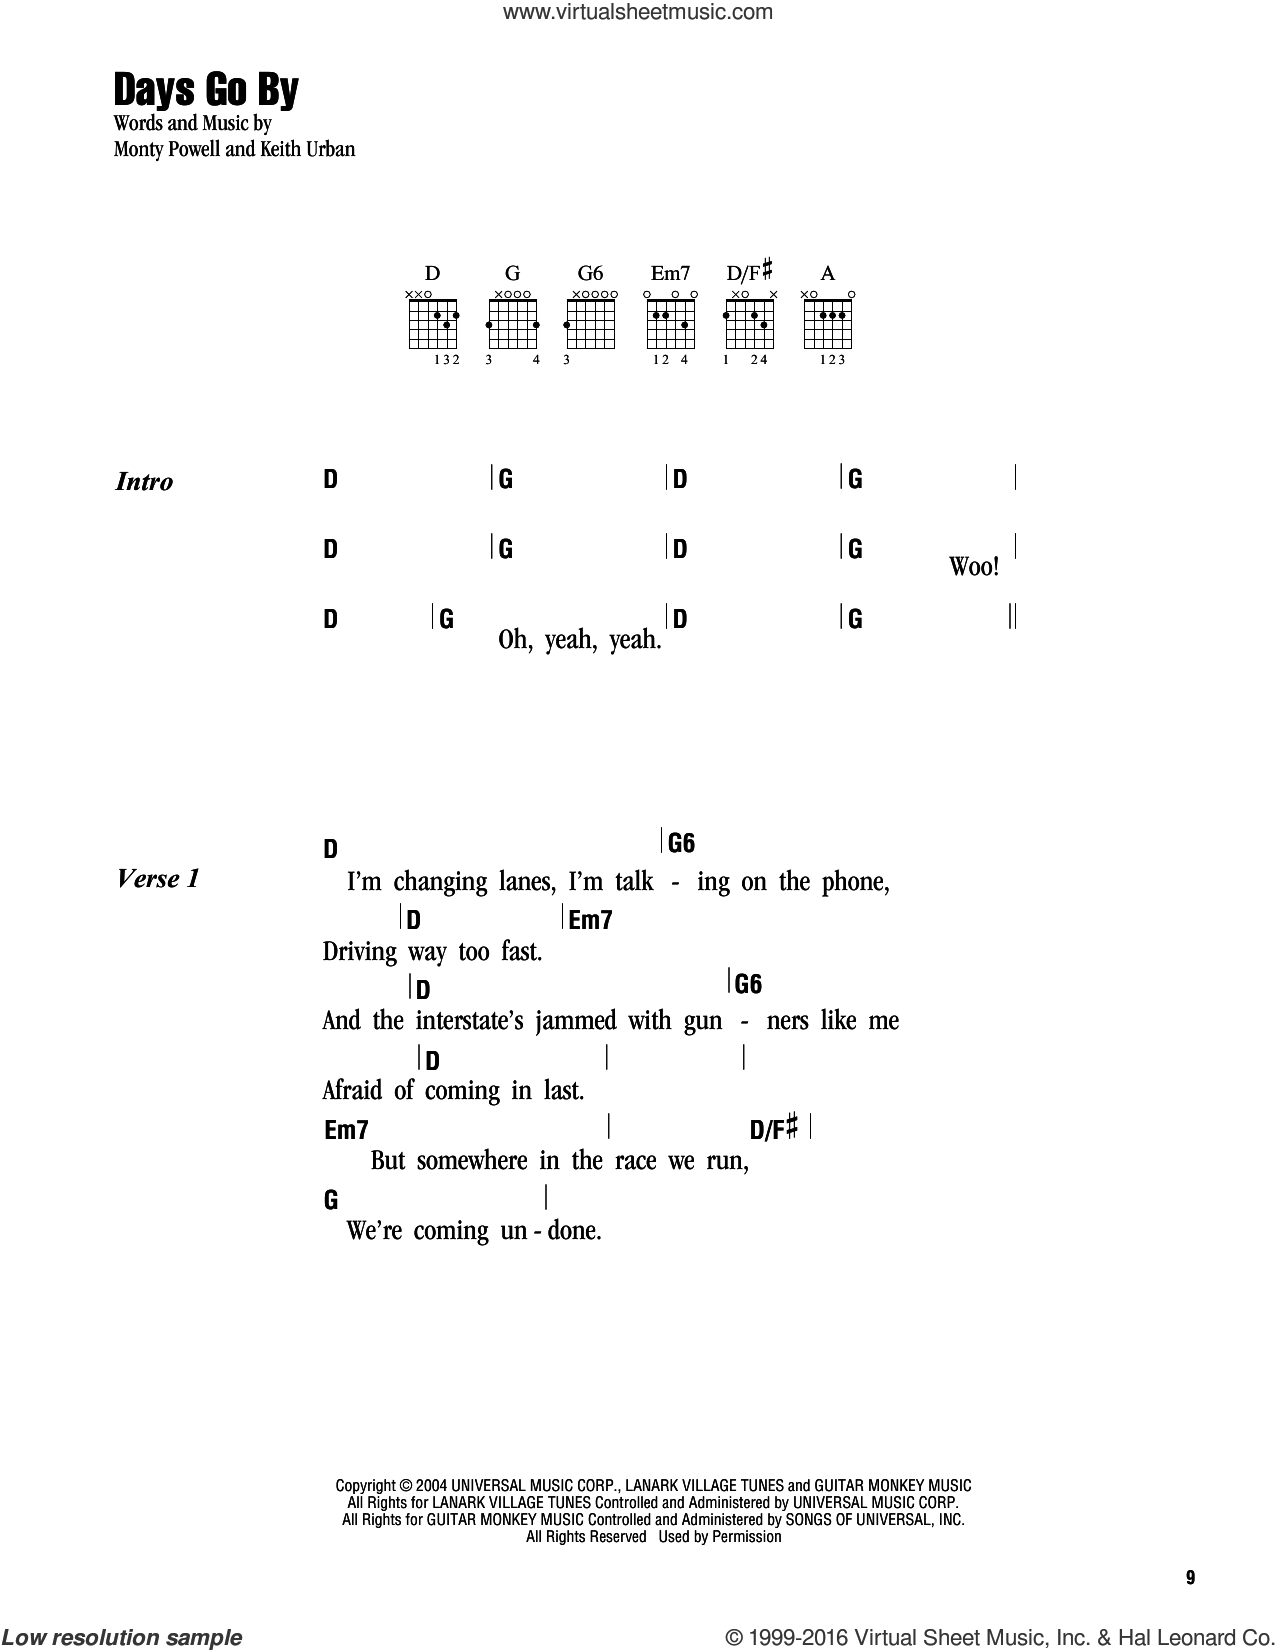 Days Go By sheet music for guitar (chords) by Keith Urban and Monty Powell, intermediate. Score Image Preview.